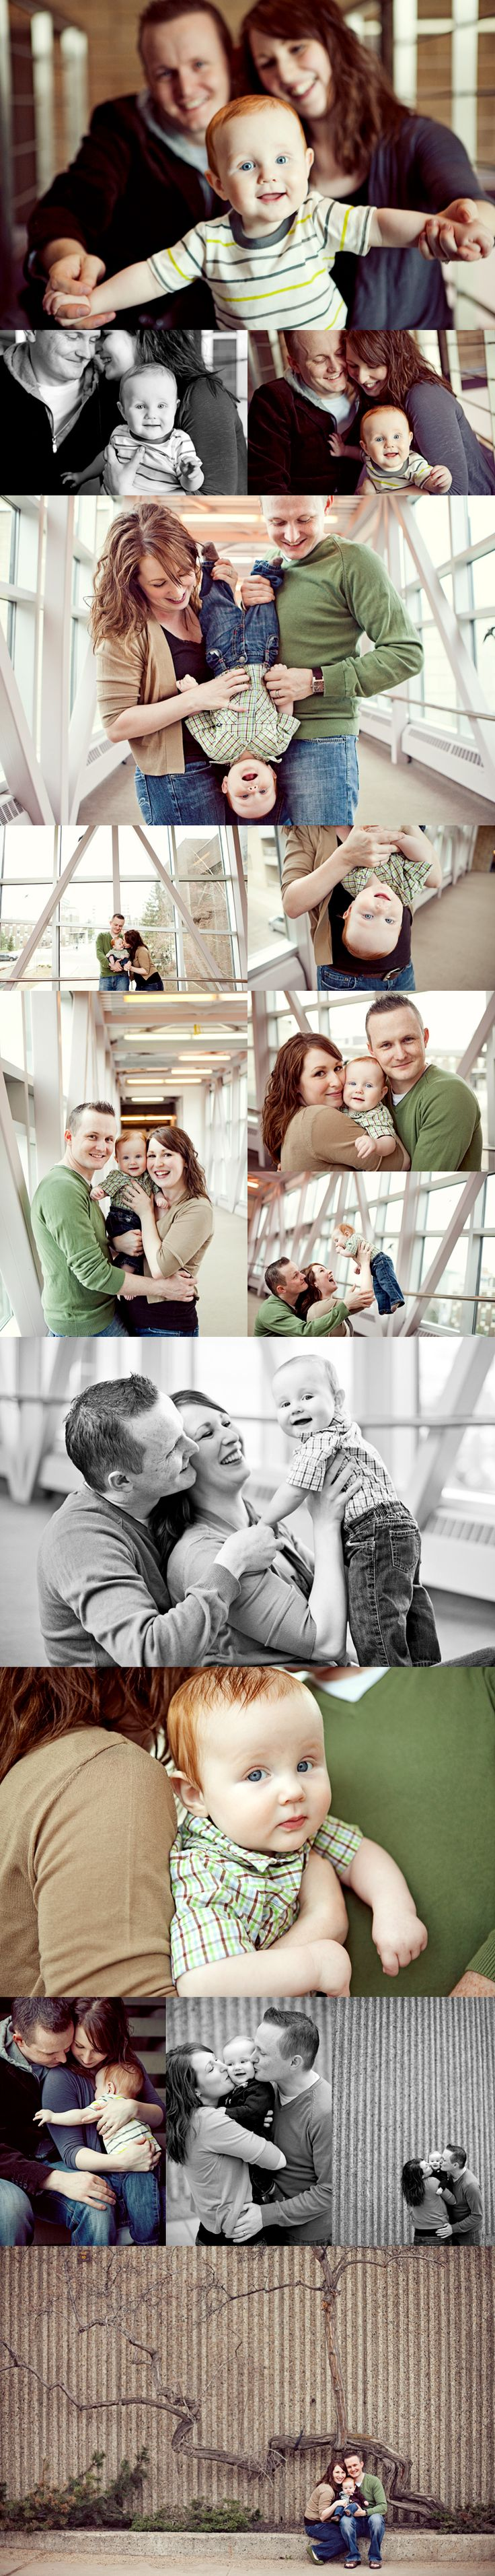 ideas for @Meagan Finnegan Smith's family photo shoot next week.